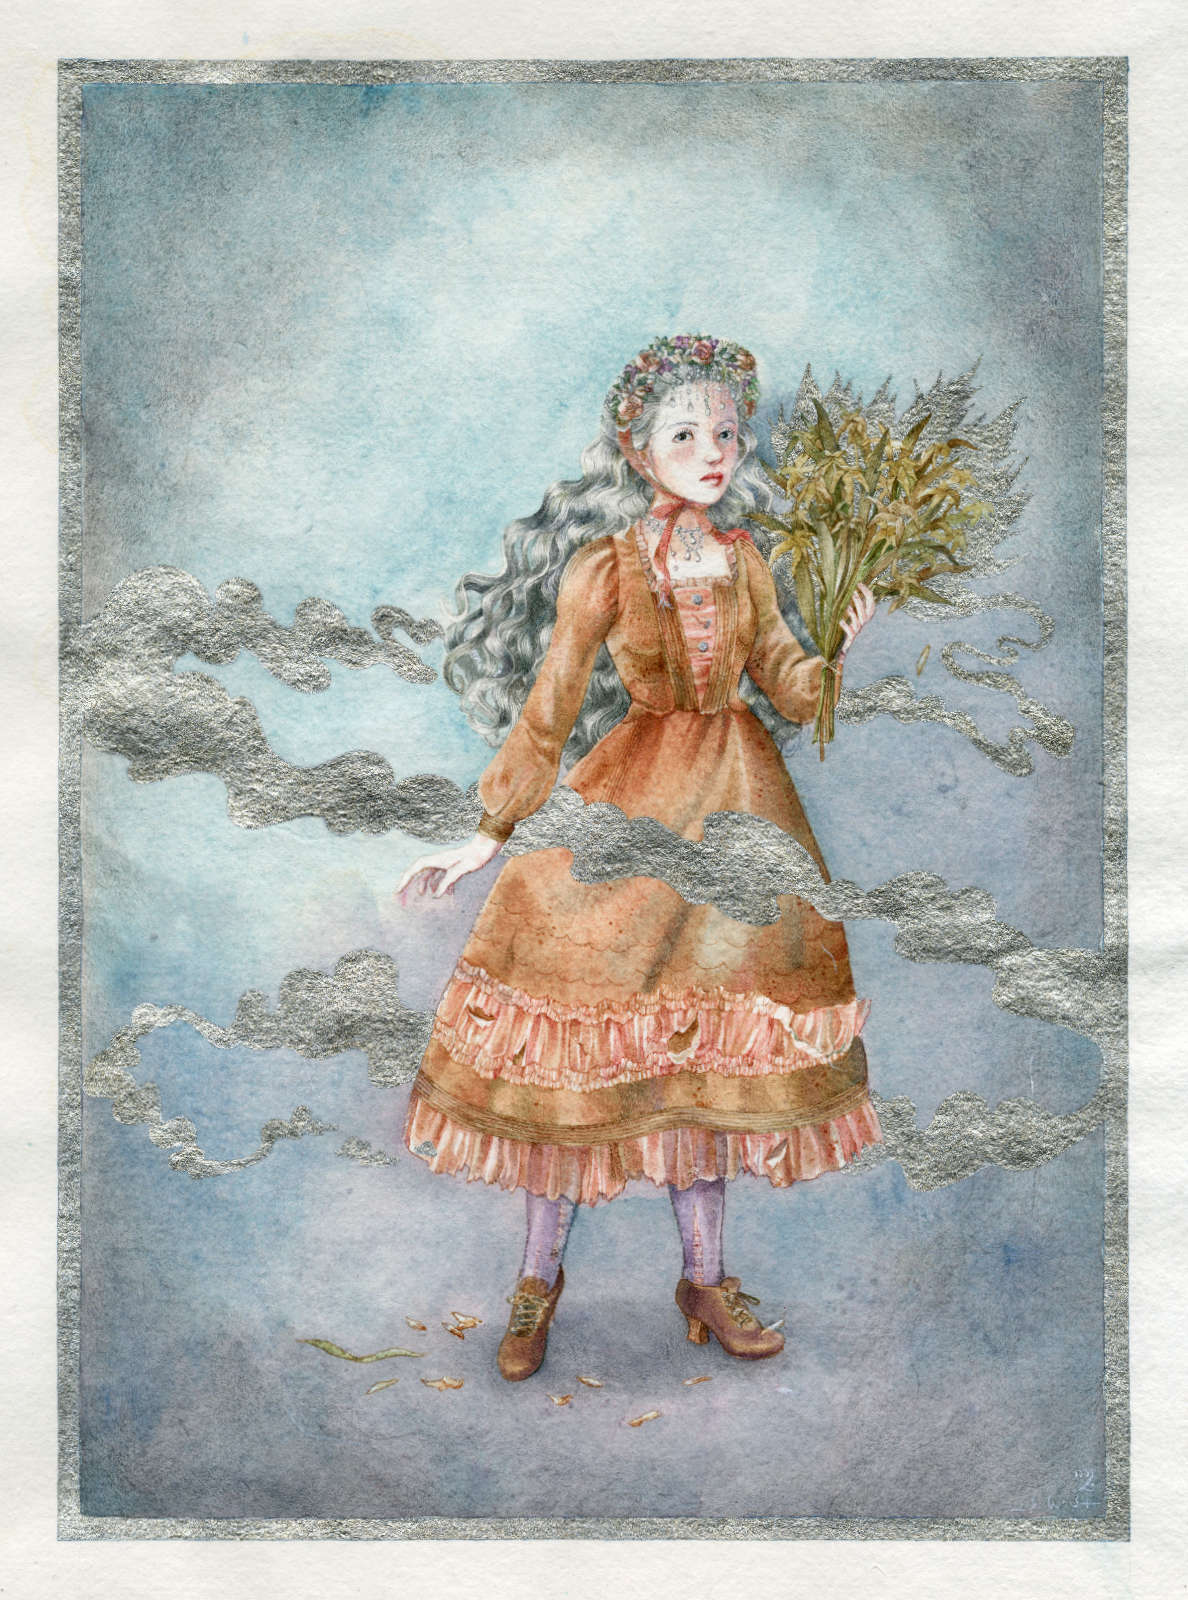 A young girl in a brown and pink Lolita dress holding up to flowers long past their prime but whose scent still lingers around, sanctified in silver ink.